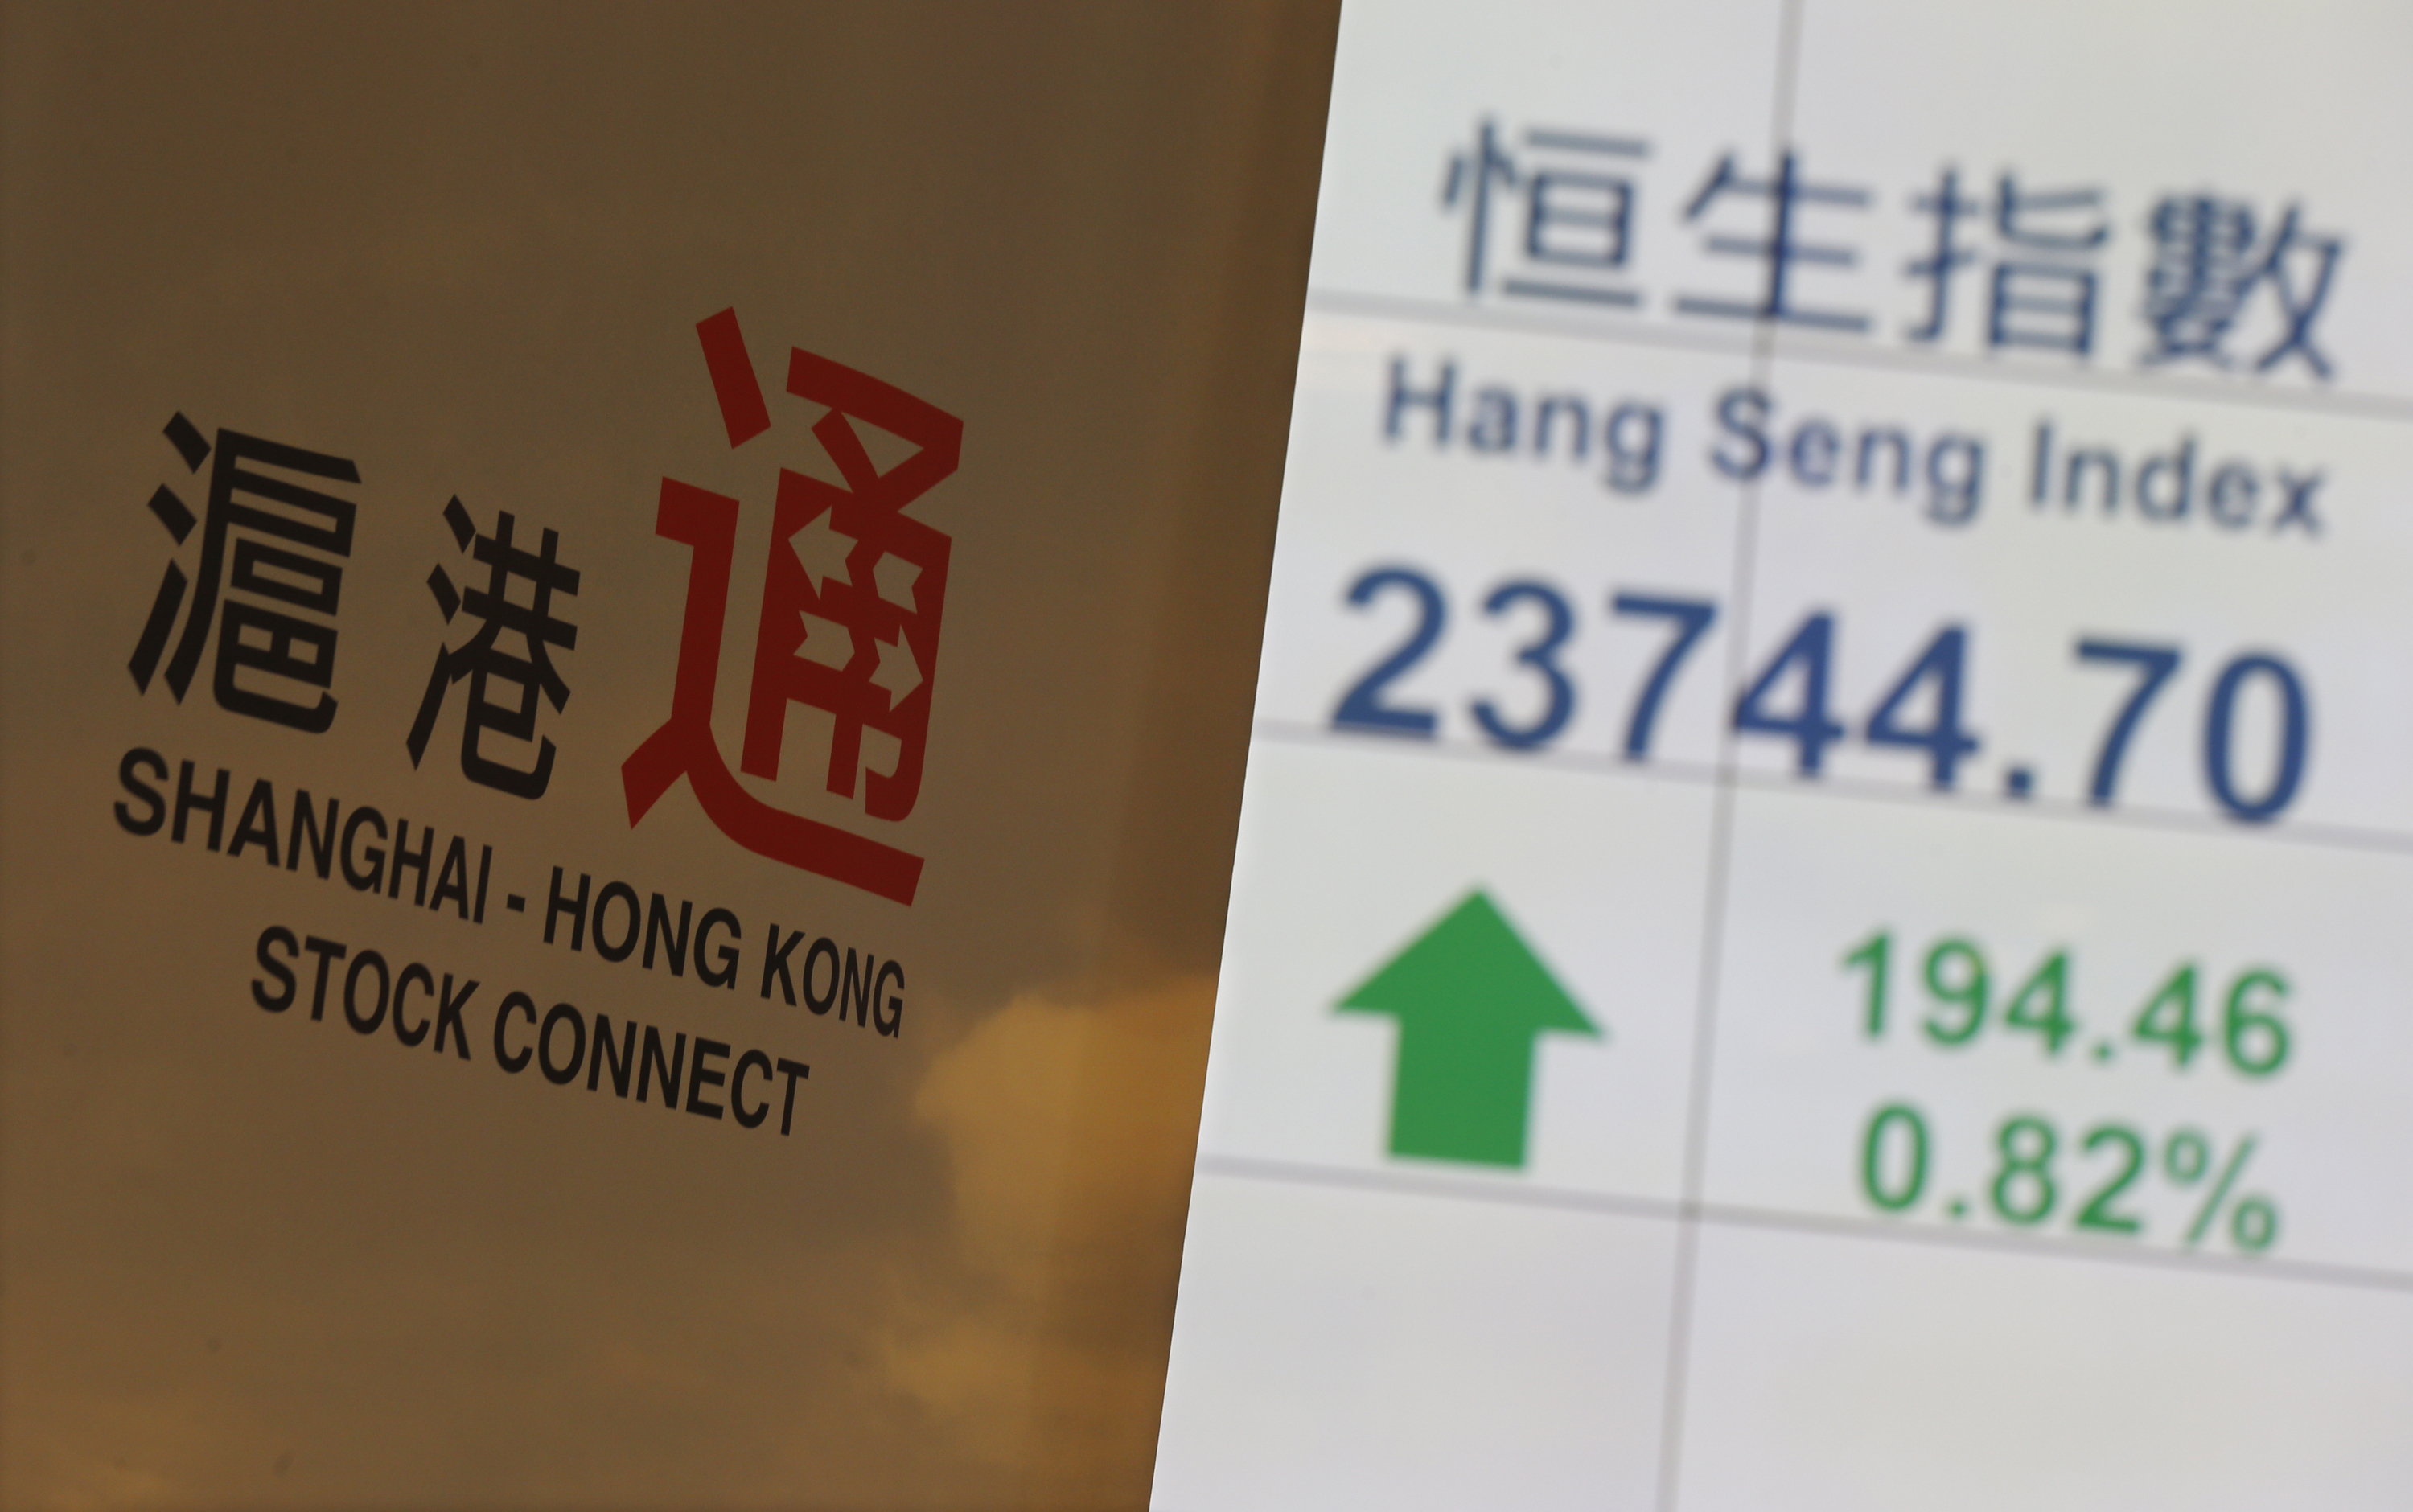 A banner introducing the Shanghai–Hong Kong Stock Connect is displayed in front of a panel showing the closing blue-chip Hang Seng Index at the Hong Kong Stock Exchange in Hong Kong on Nov. 10, 2014